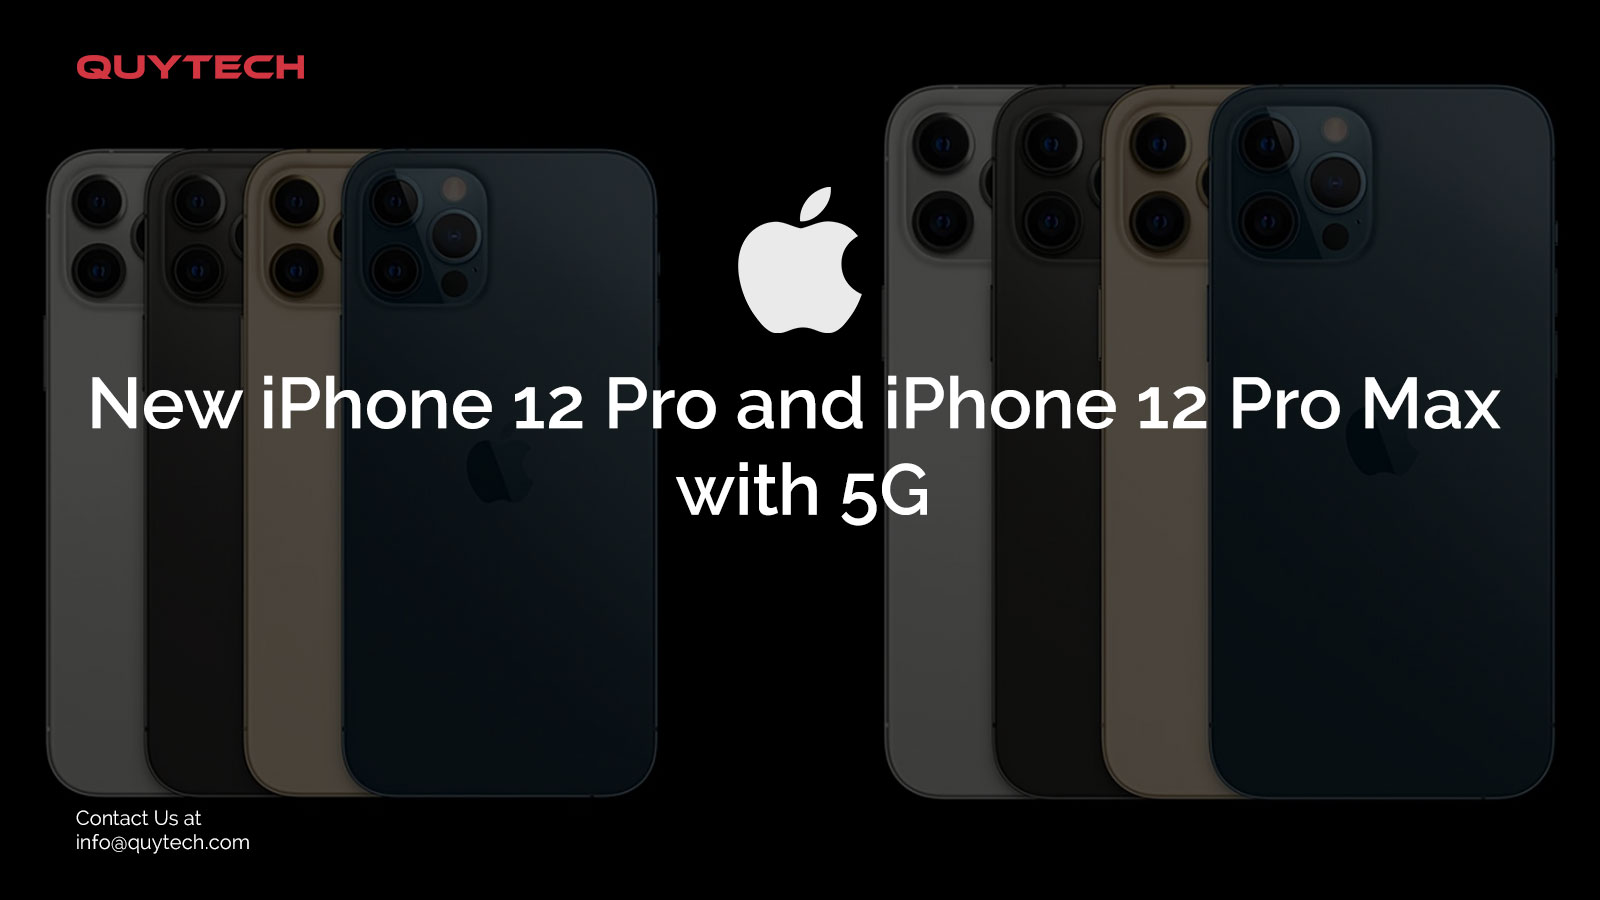 New iphone 12 pro and iphone 12 pro max with 5G